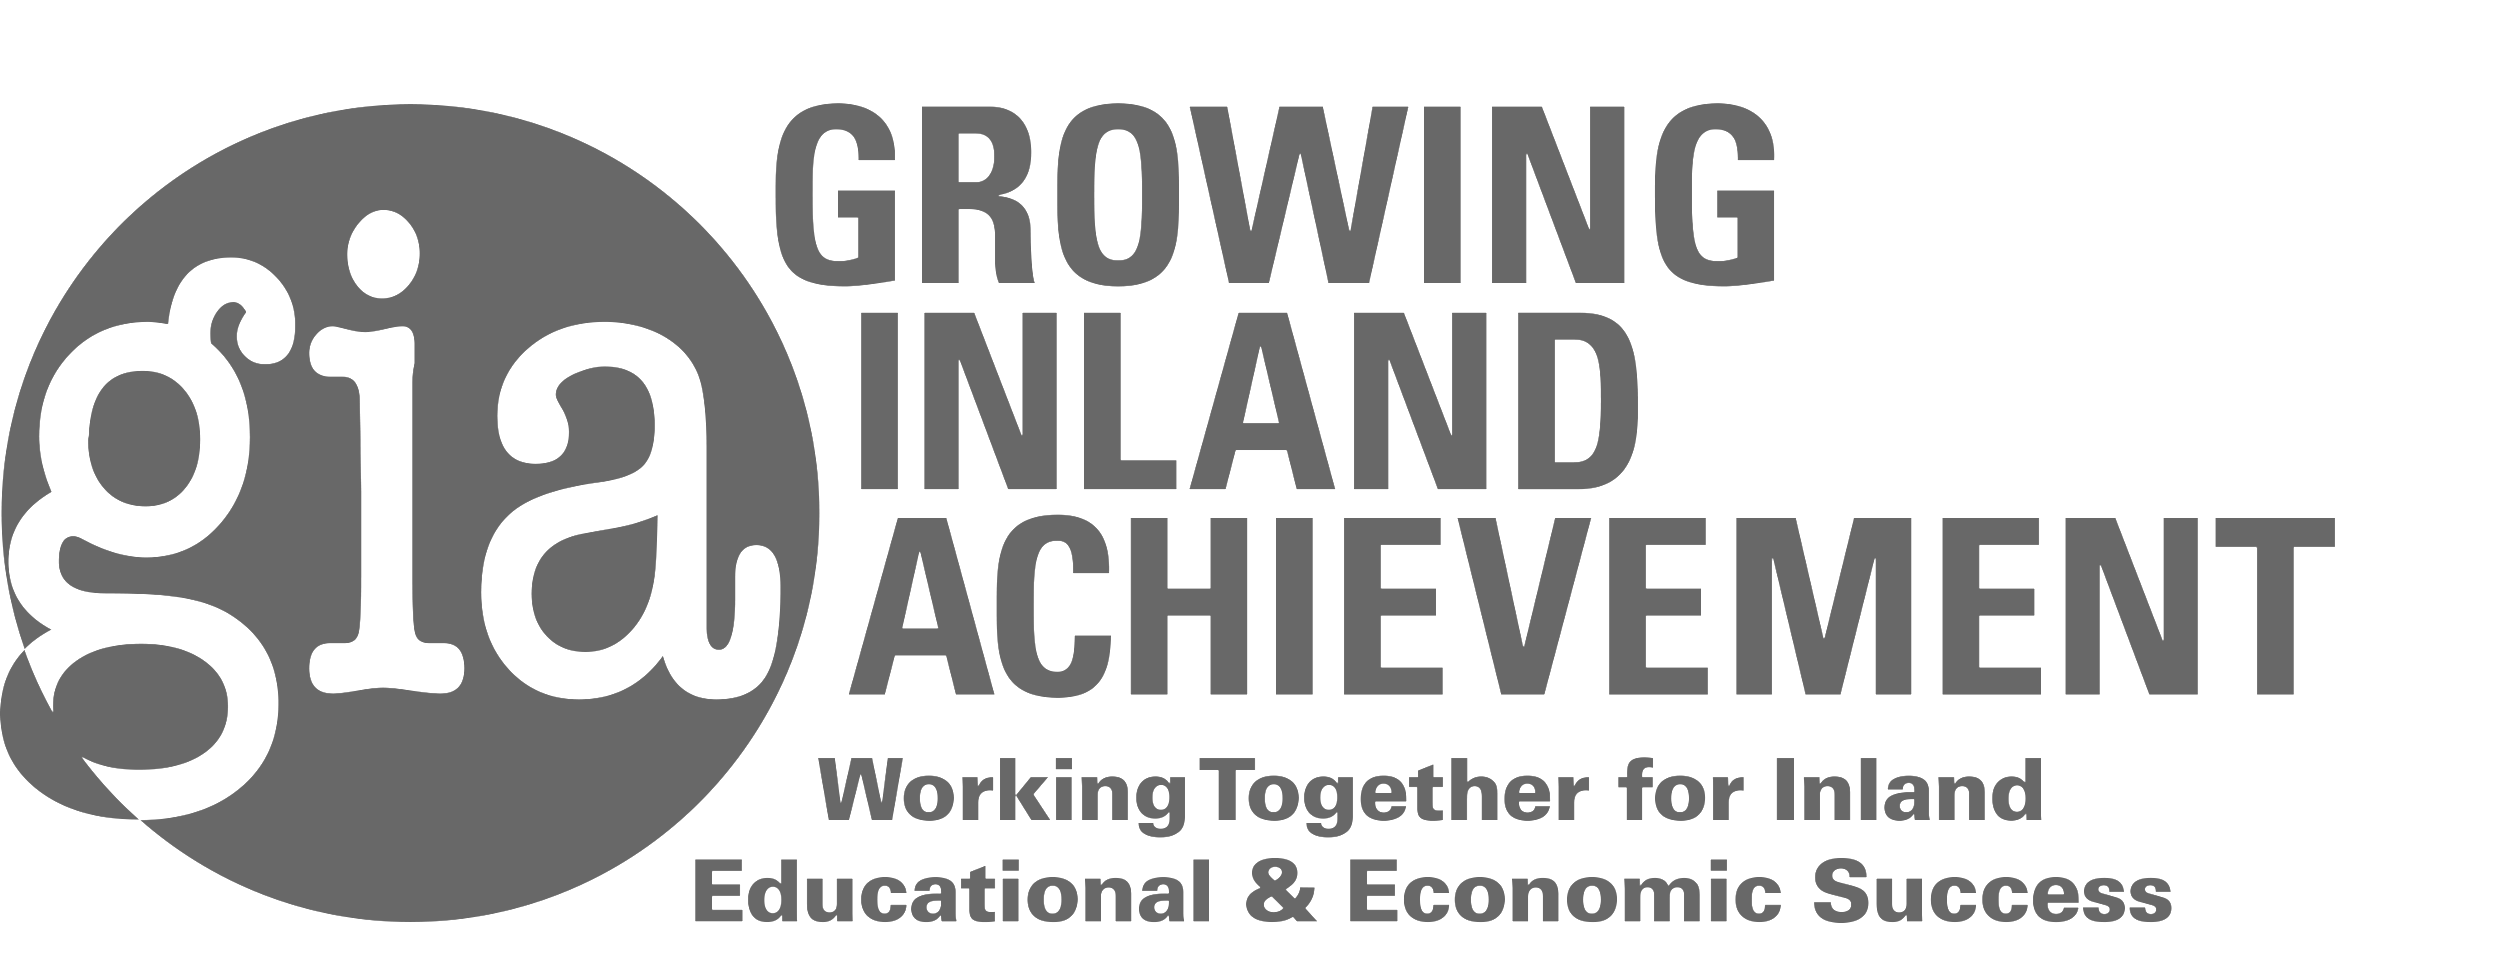 Growing Inland Achievement logo